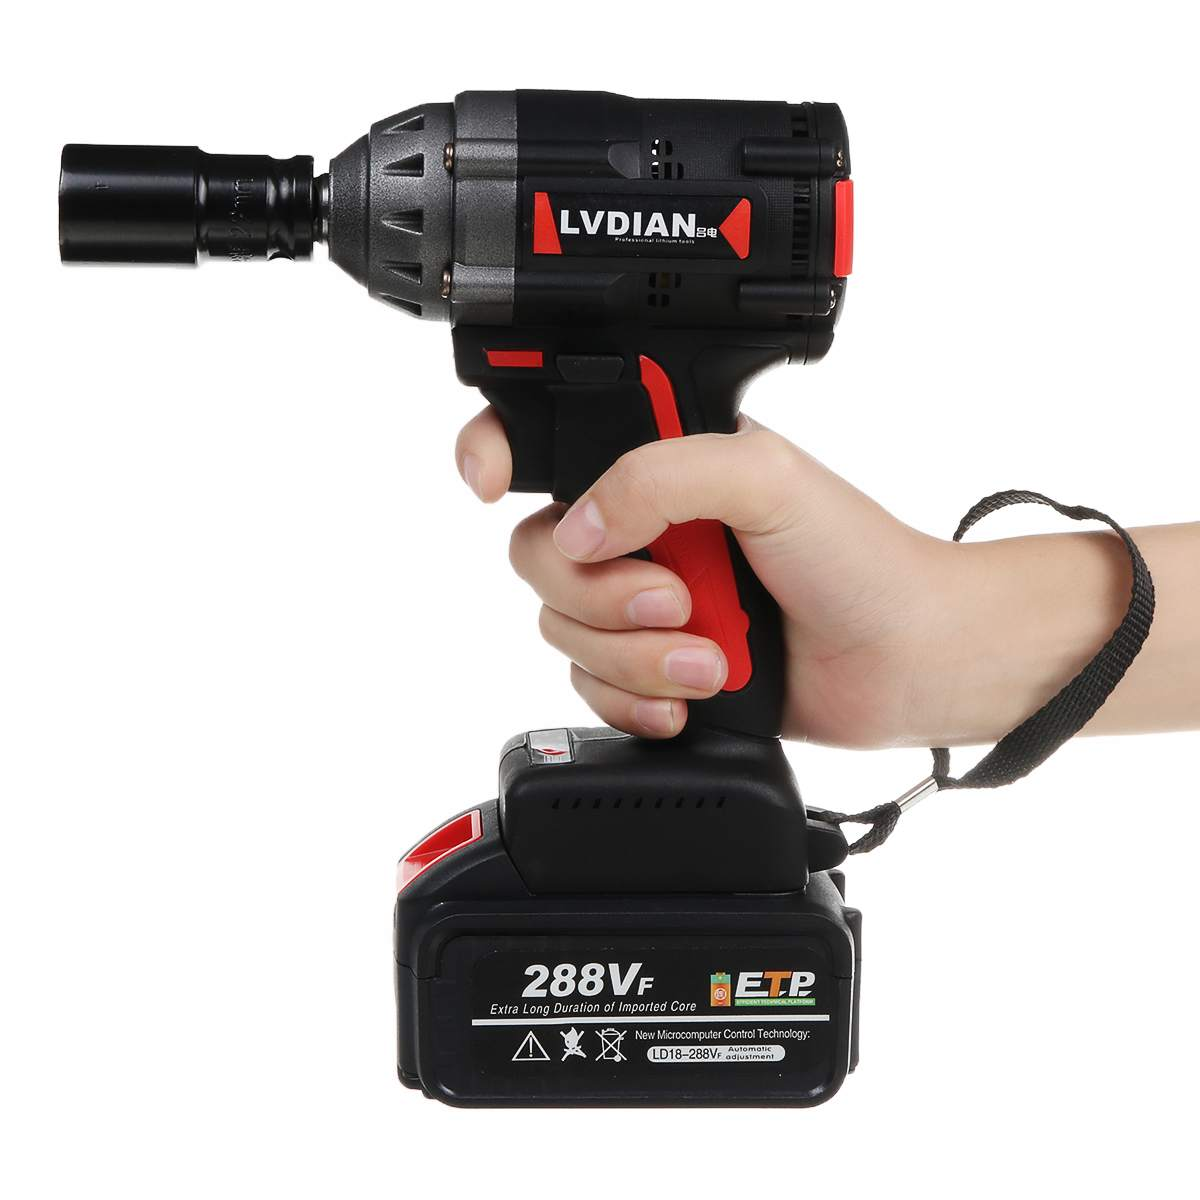 288VF 600N.M Cordless Brushless Impact Wrench Stepless Speed Change Switch Li-ion Battery Electric Wrench Power Tool Car Repair